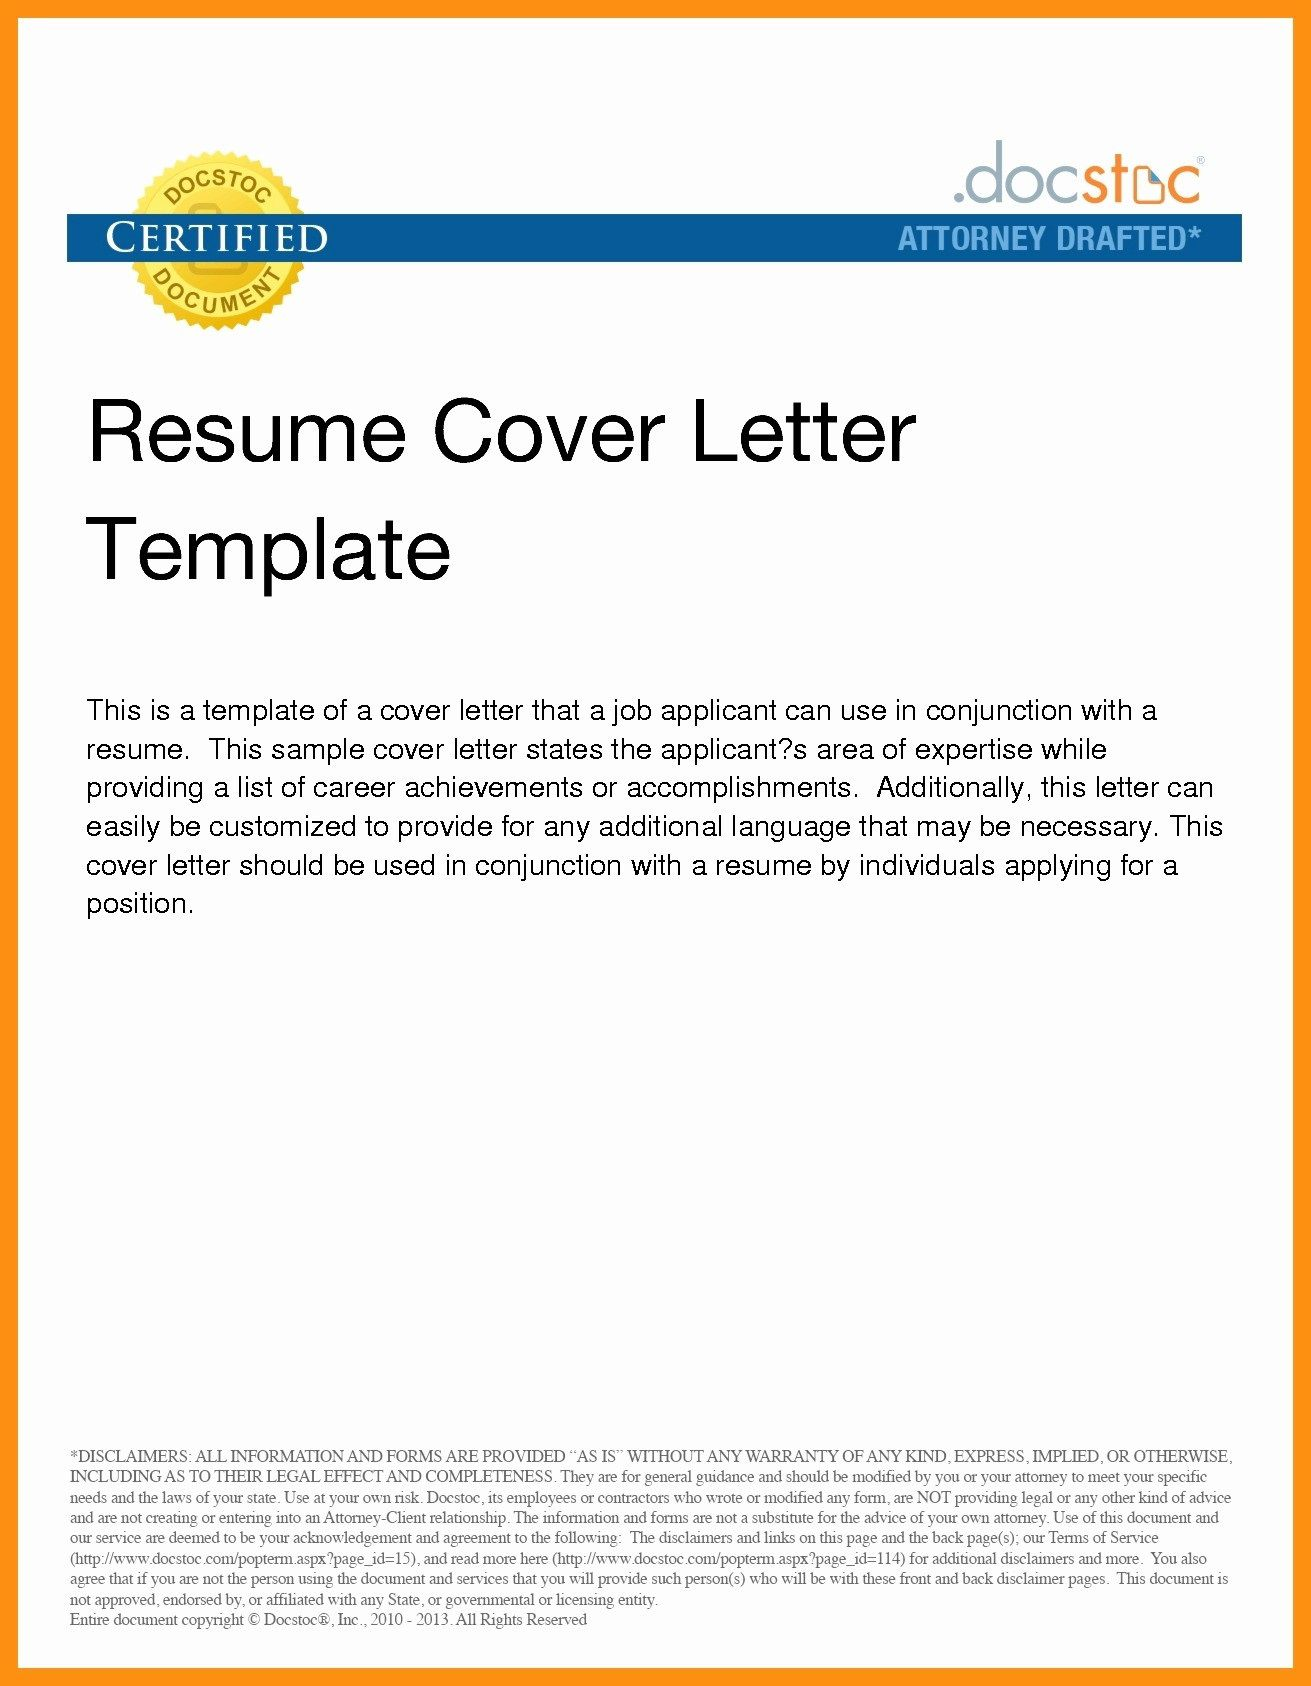 email resume cover letter samples addictionary sample for submitting fascinating design Resume Sample Email For Submitting Resume